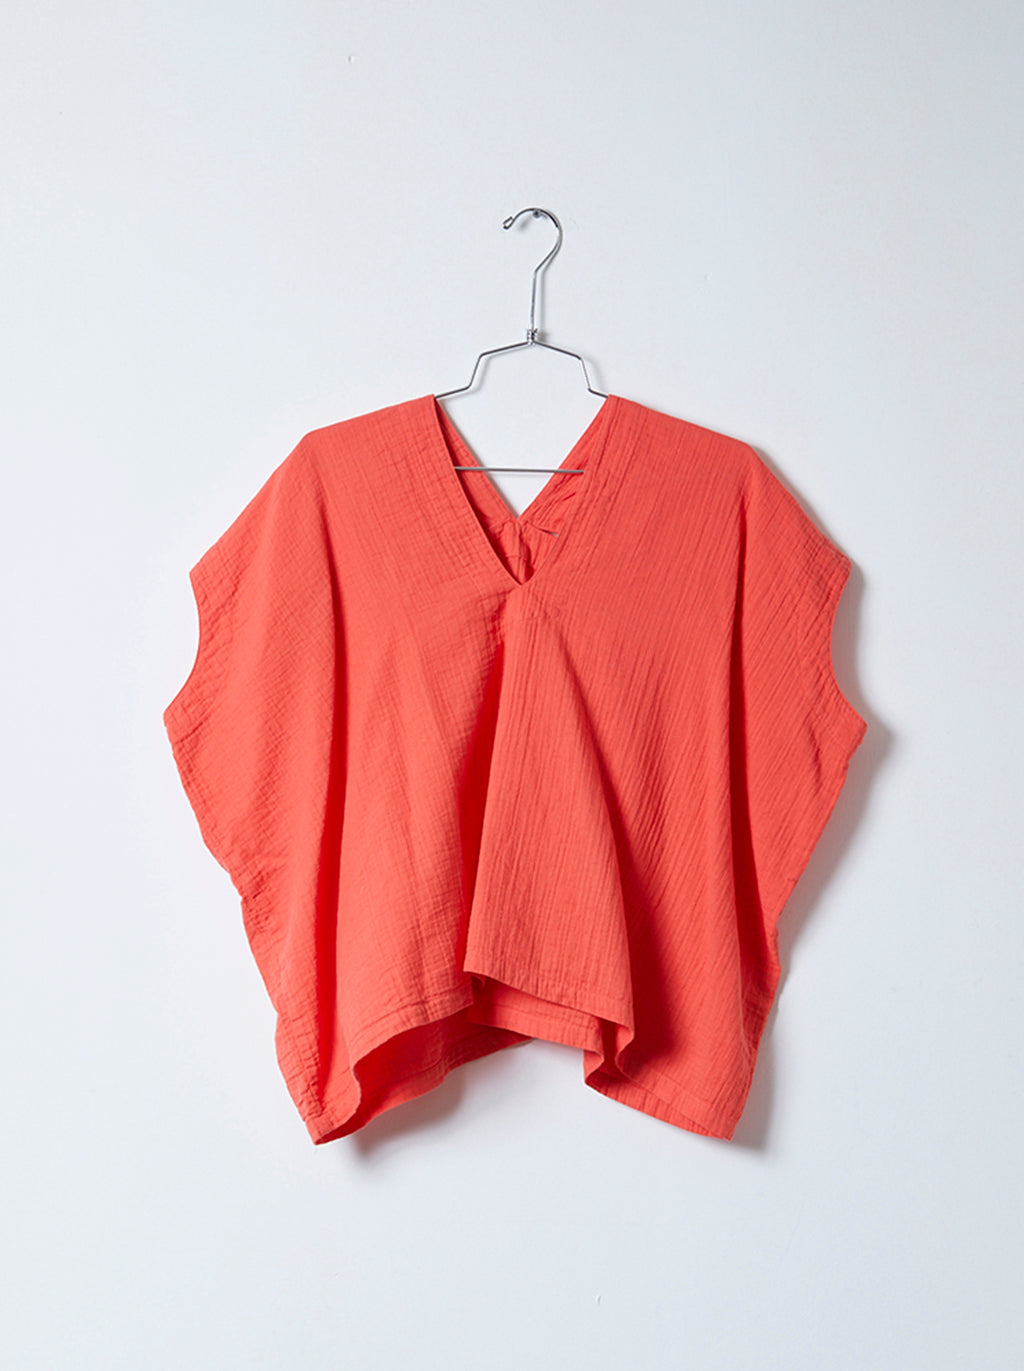 Celeste Top in Crinkled Cotton, More Colors